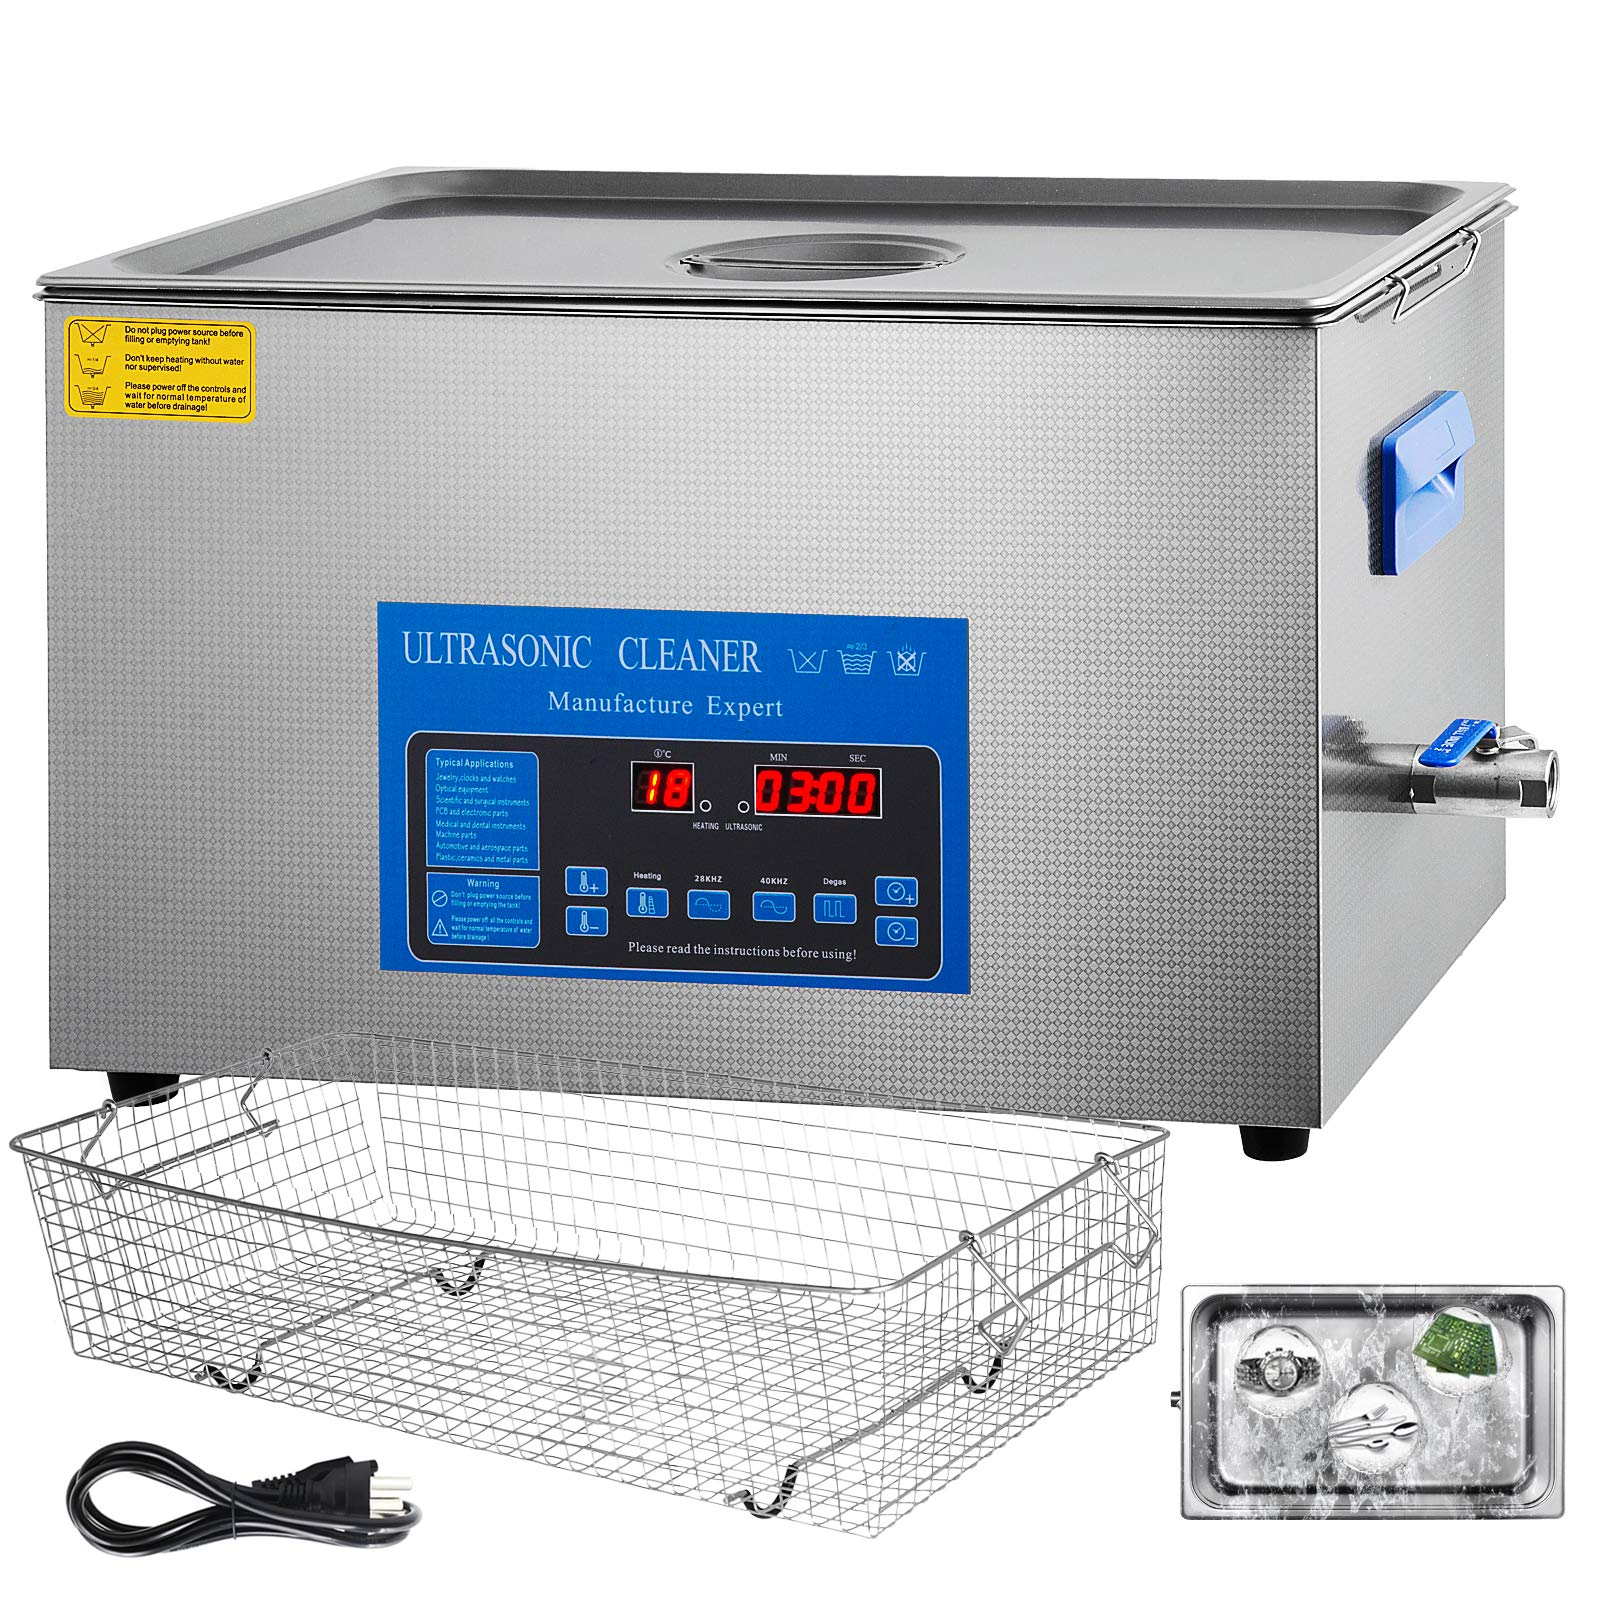 Mophorn 28 and 40khz Dual Frequency Ultrasonic Cleaner 304 Stainless Steel Digital Lab Ultrasonic Cleaner with Heater Timer for Jewelry Watch Glasses Circuit Board Small Parts(22L) by Mophorn